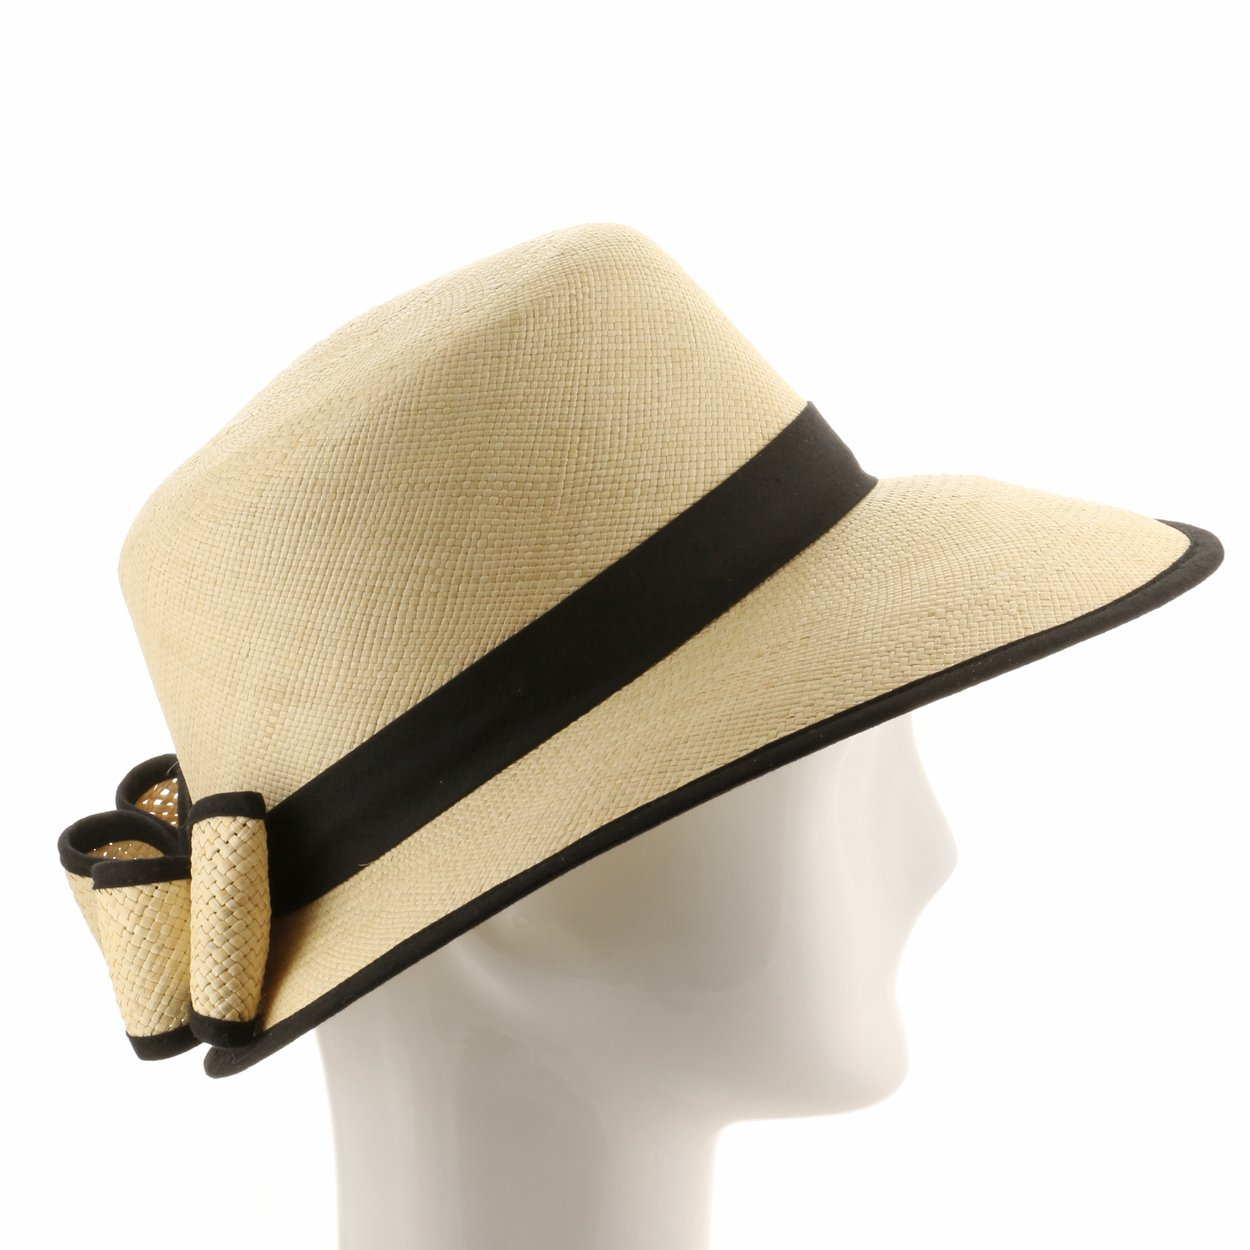 Victorian Hat History | Bonnets, Hats, Caps 1830-1890s Vivianne Scoop Handwoven Straw Visor Panama Hat Made In Ecuador $125.99 AT vintagedancer.com